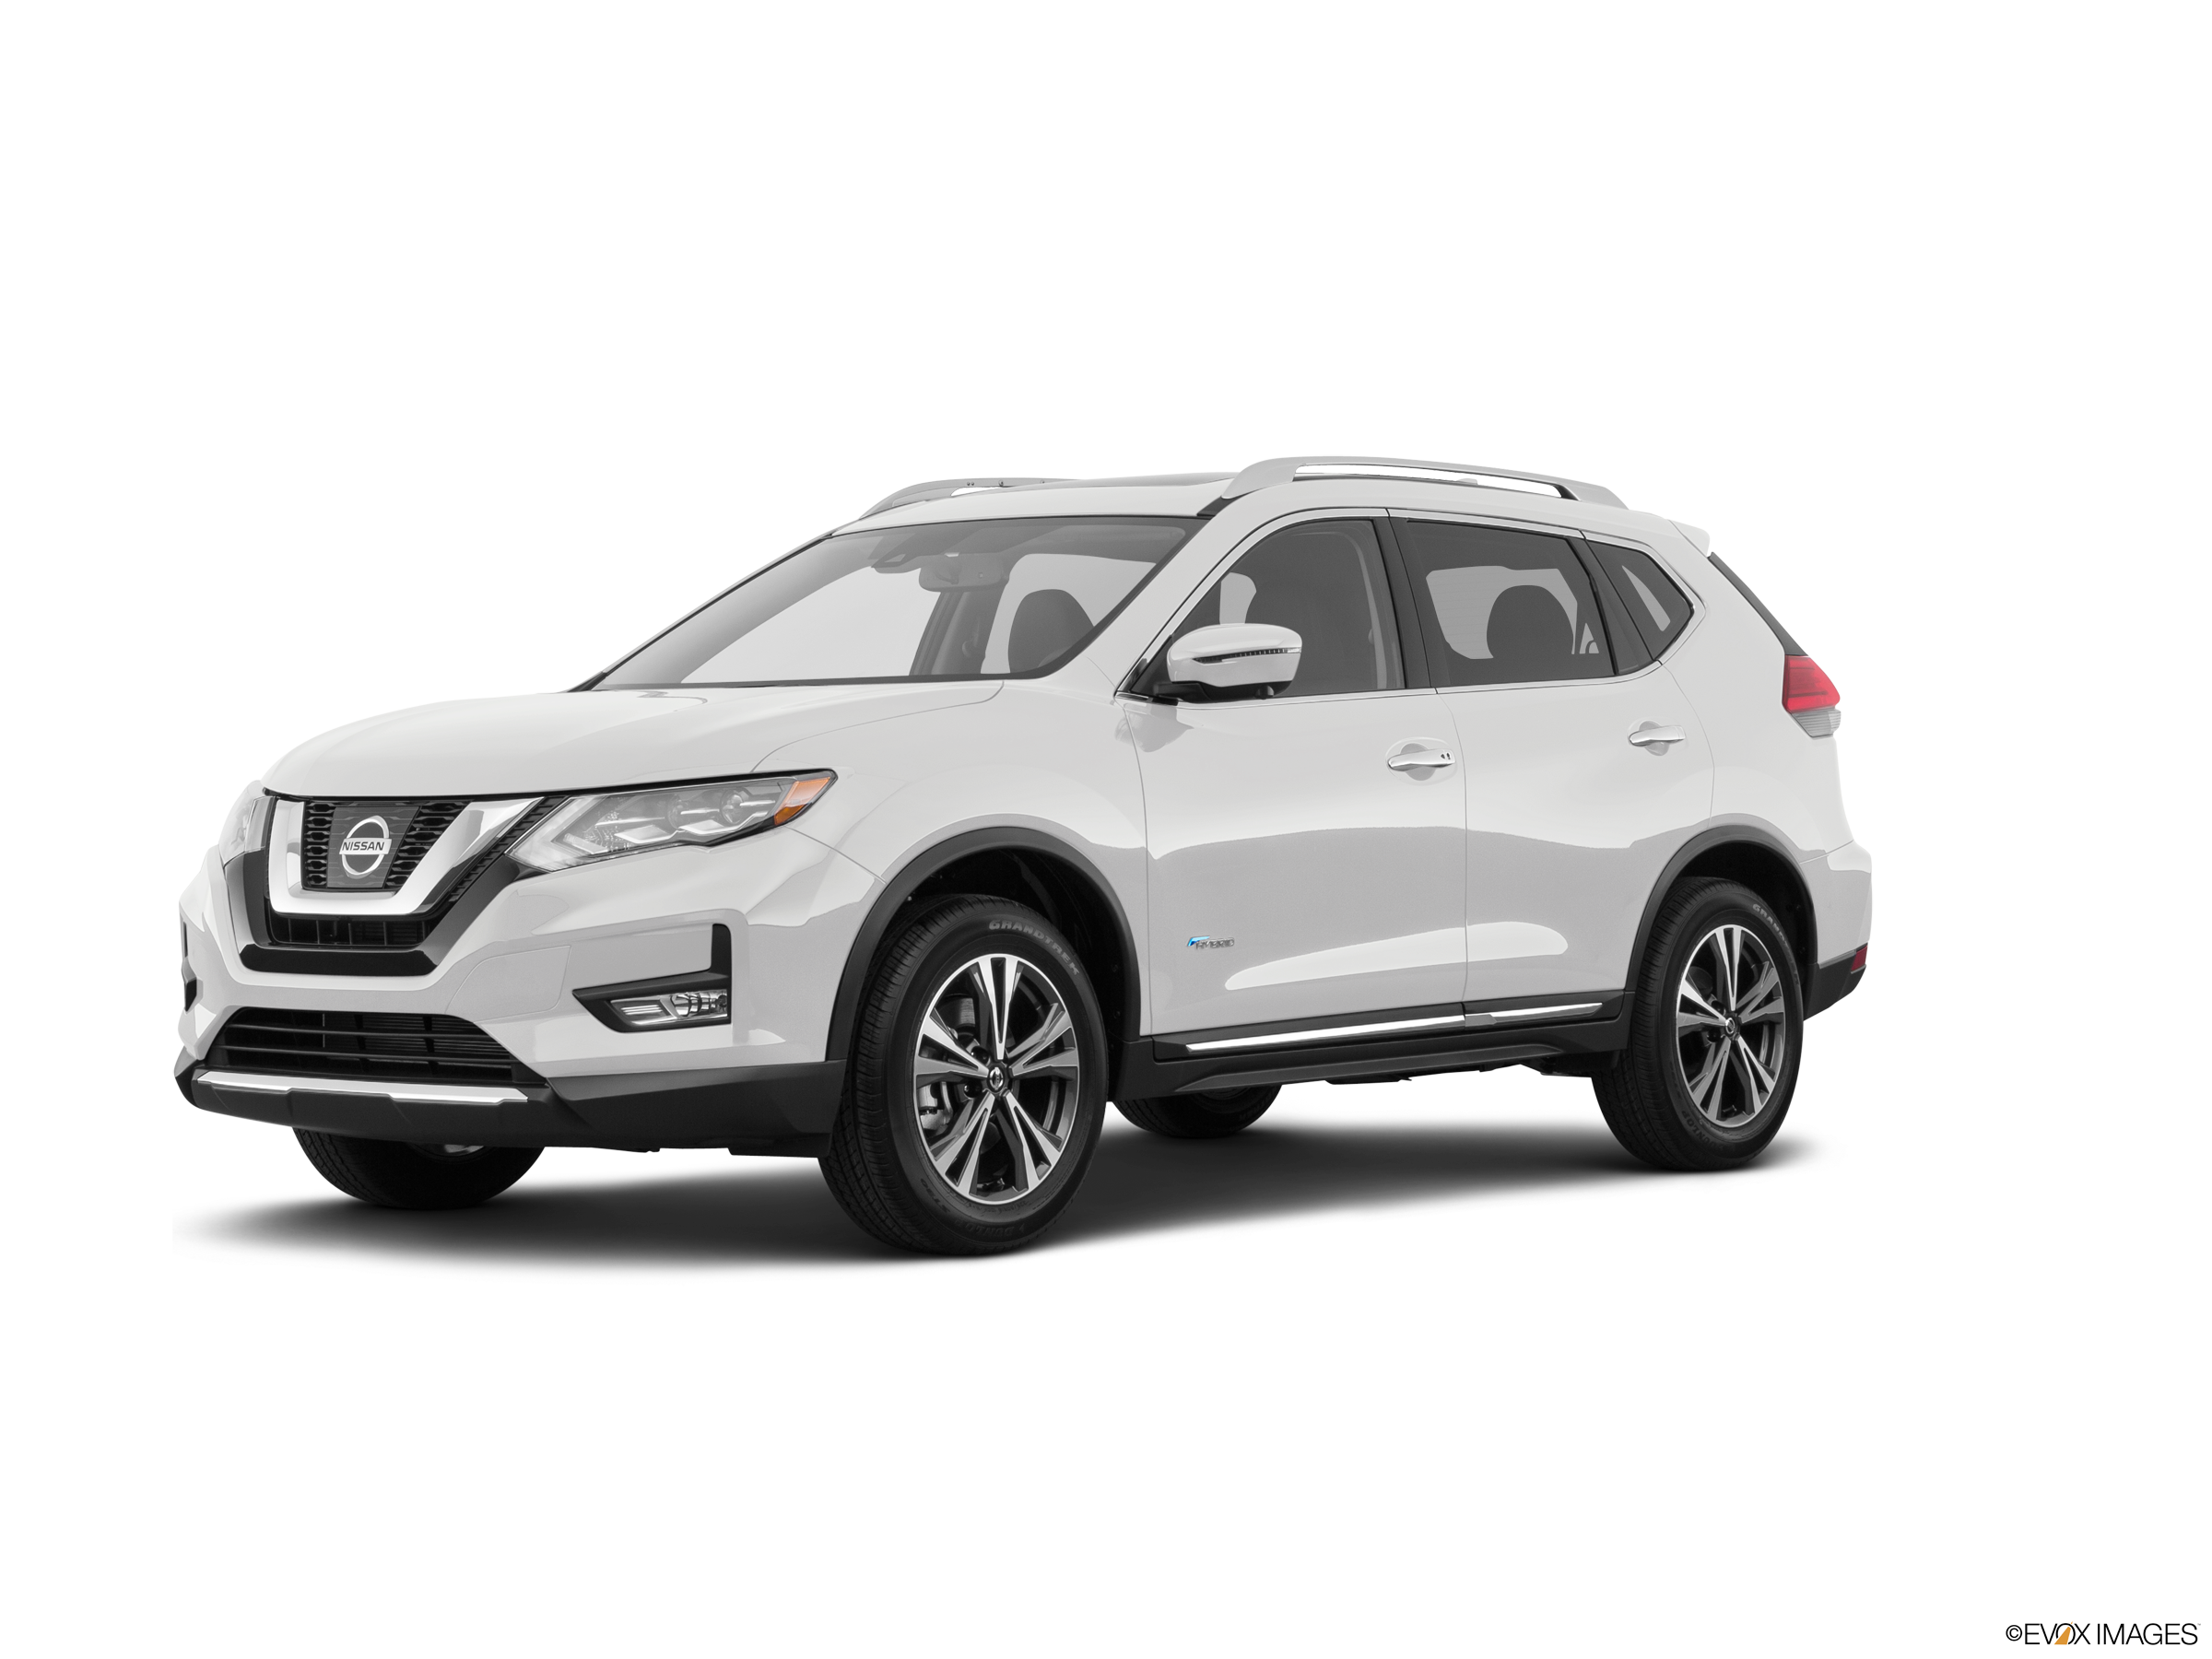 Most Popular Hybrids of 2017 - 2017 Nissan Rogue